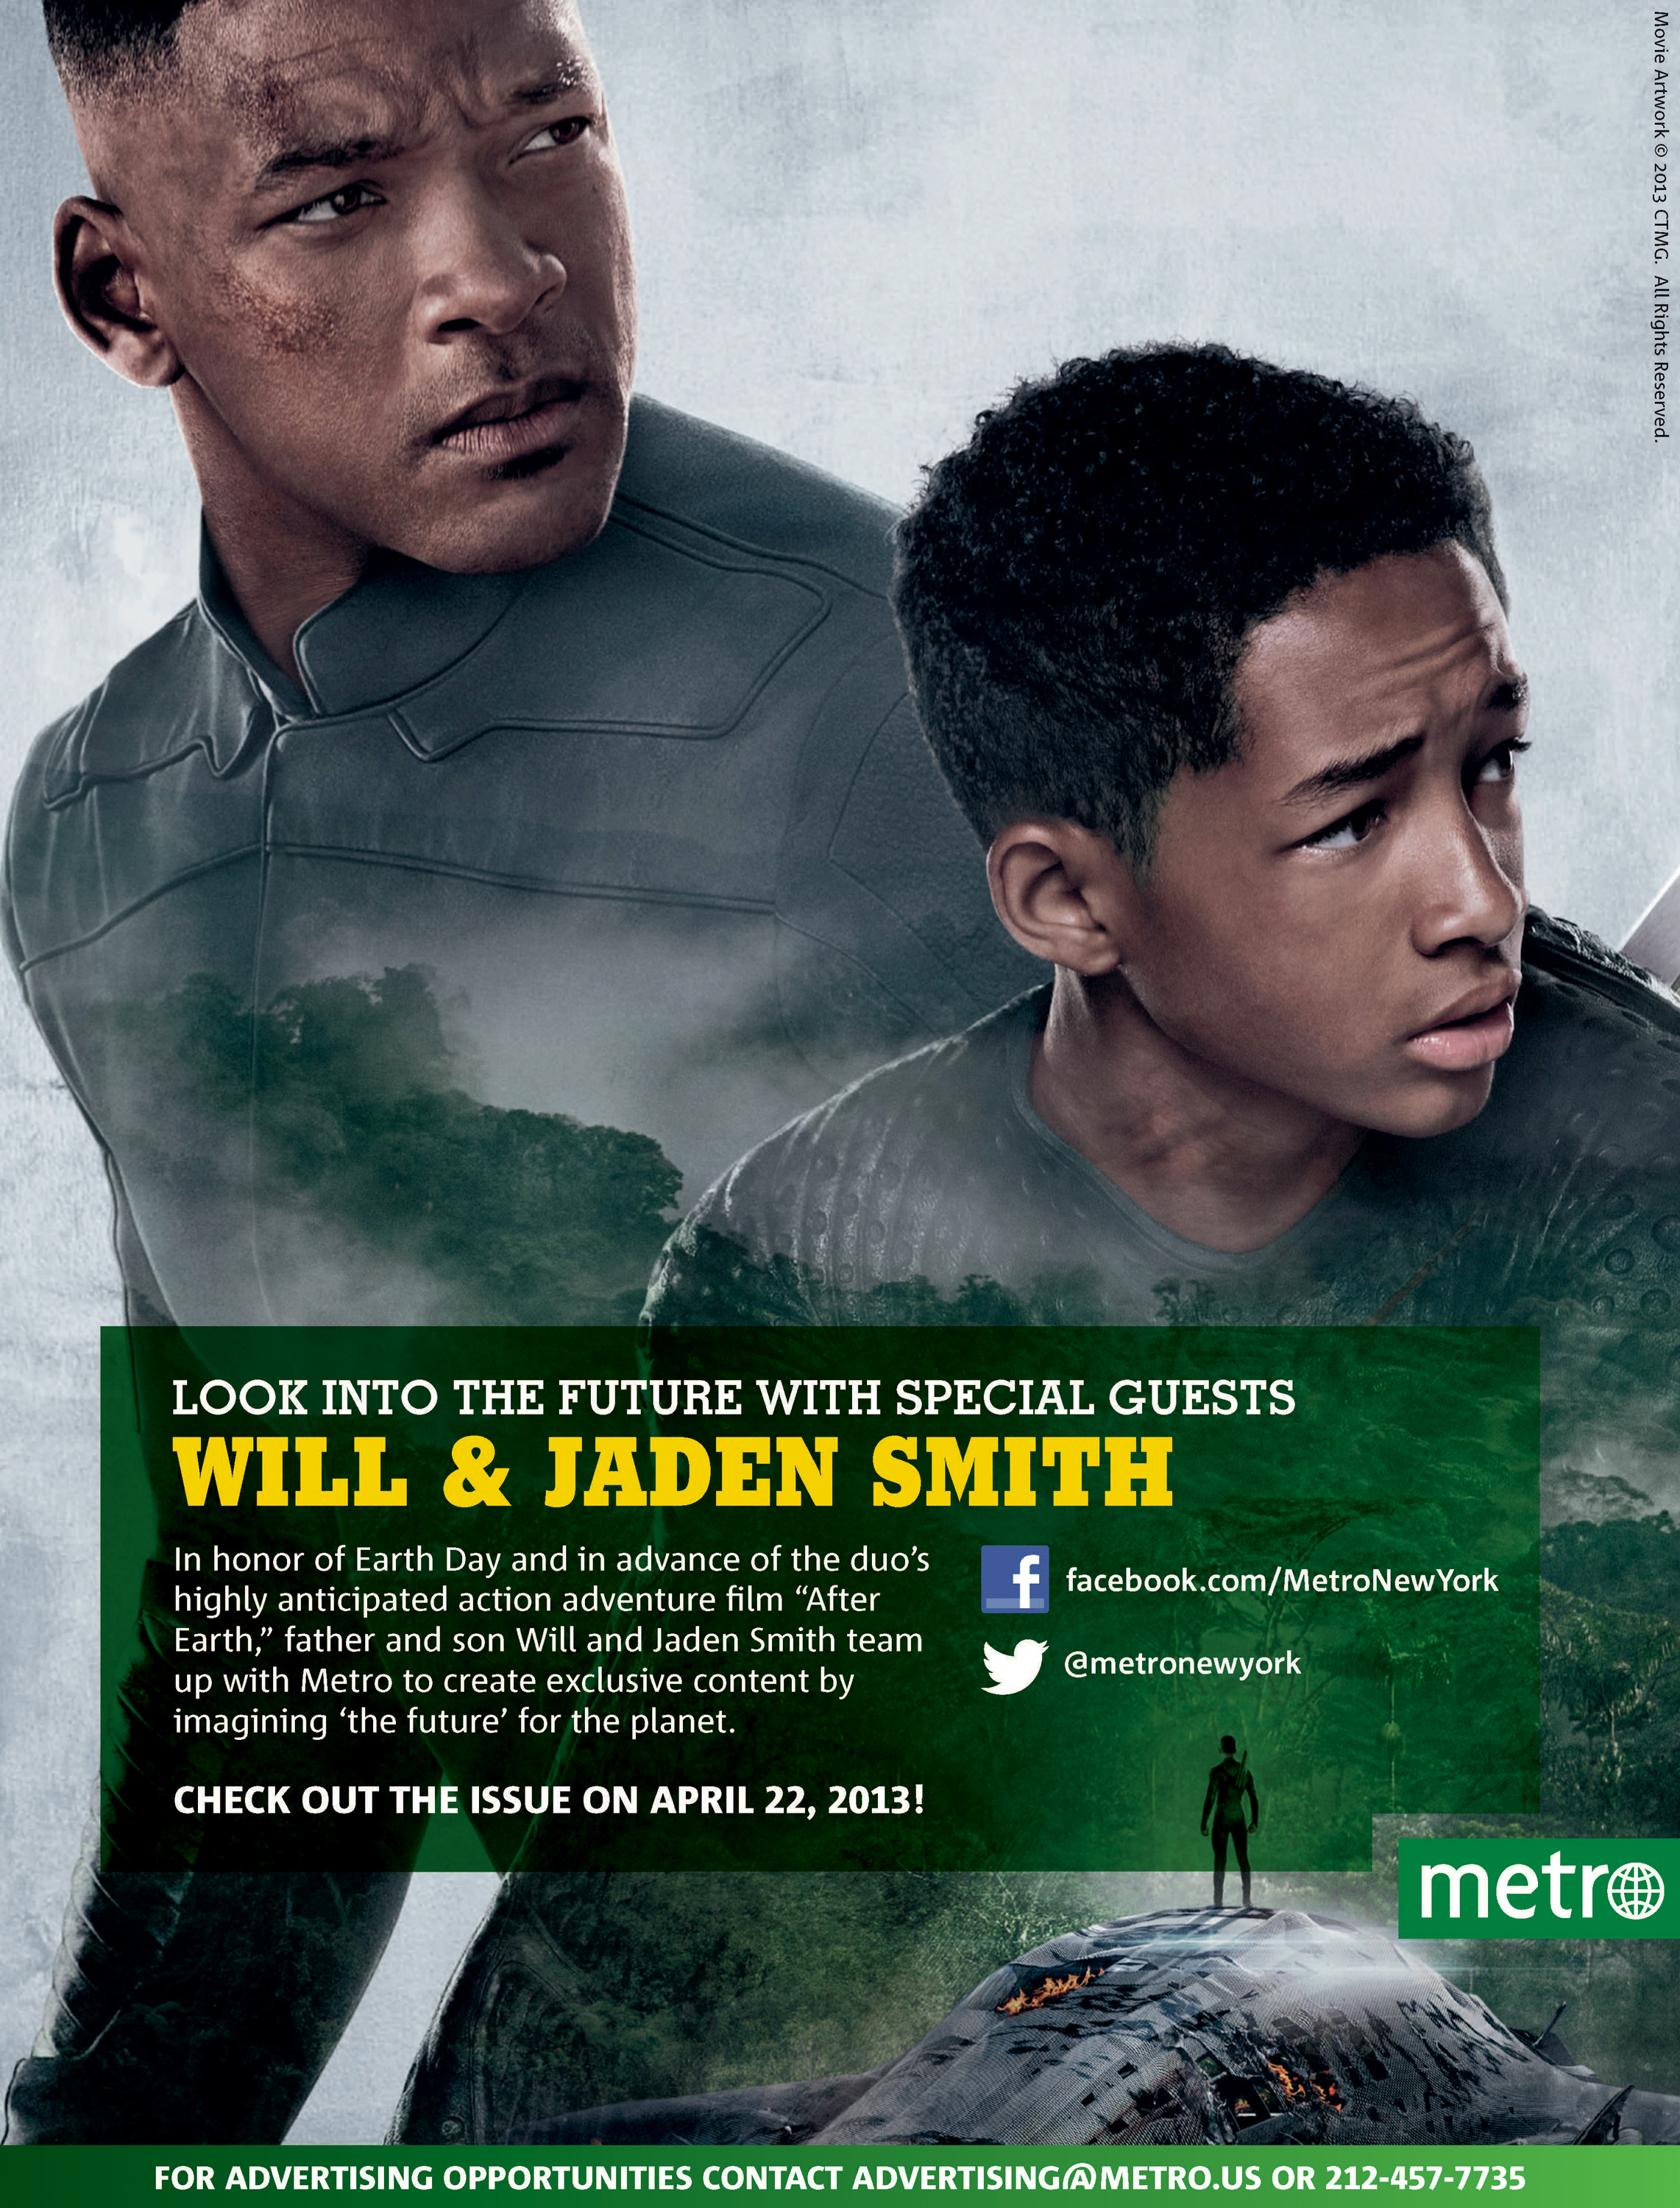 Will & Jaden Smith - Special Metro Guests on April 22, 2013!